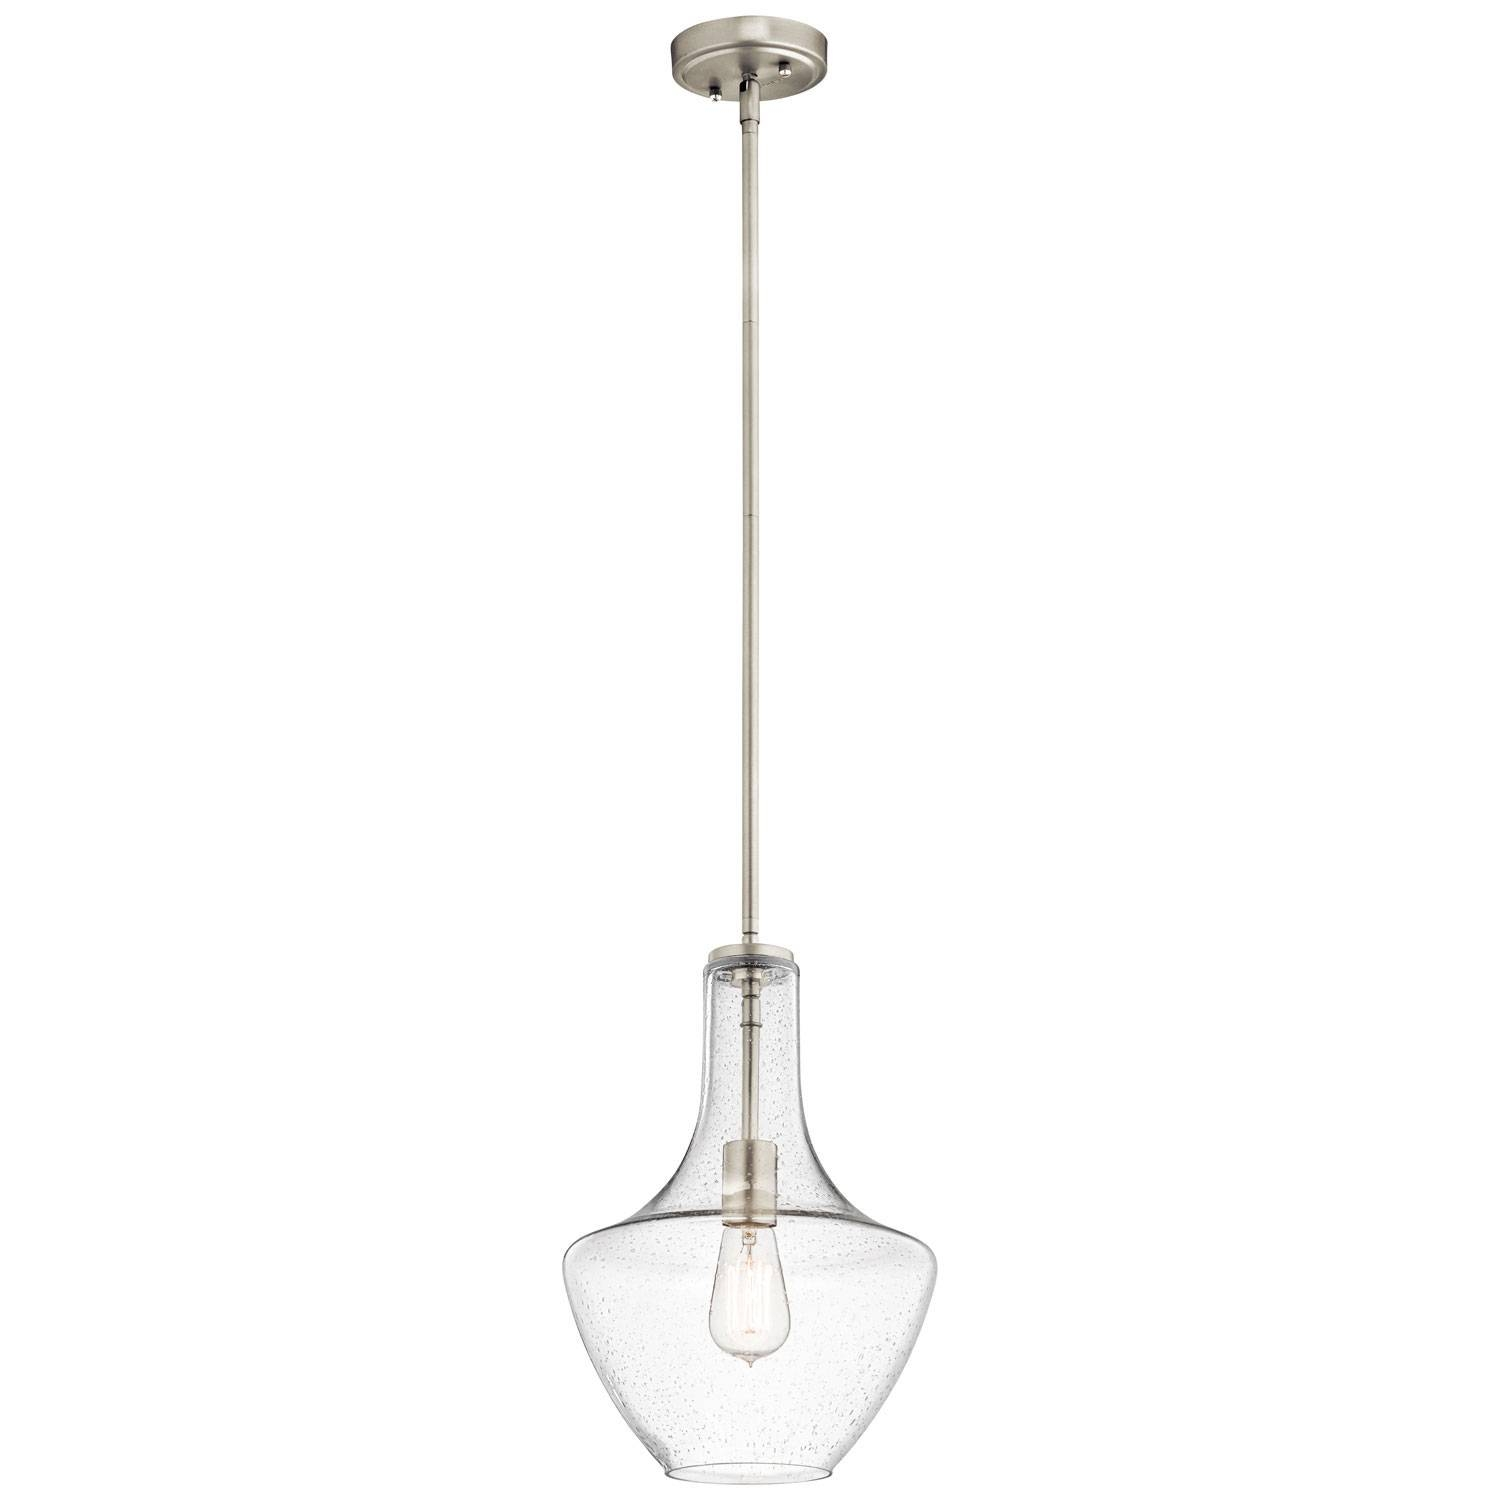 Schoolhouse Pendant Lighting | Bellacor for Schoolhouse Pendant Lights Fixtures (Image 11 of 15)